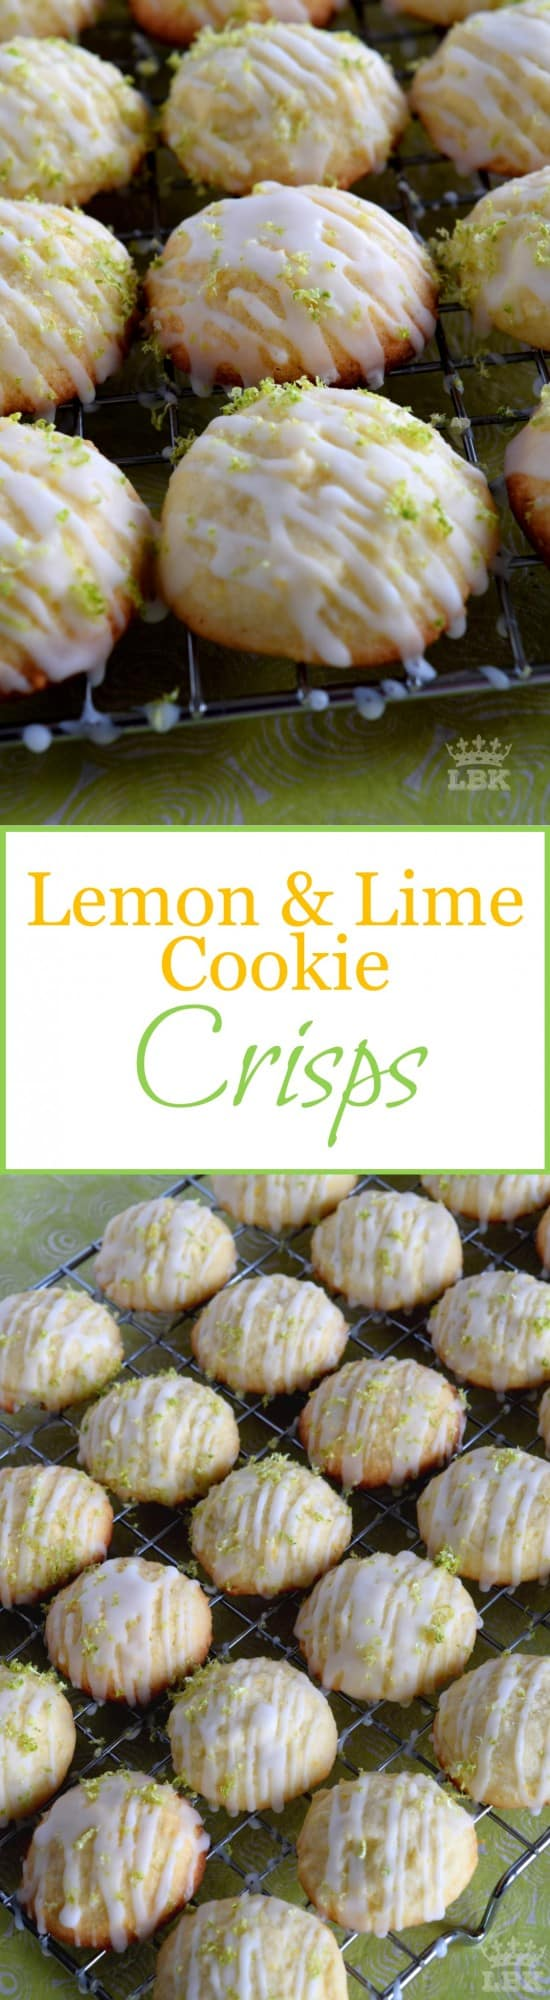 Lemon and Lime Cookie Crisps